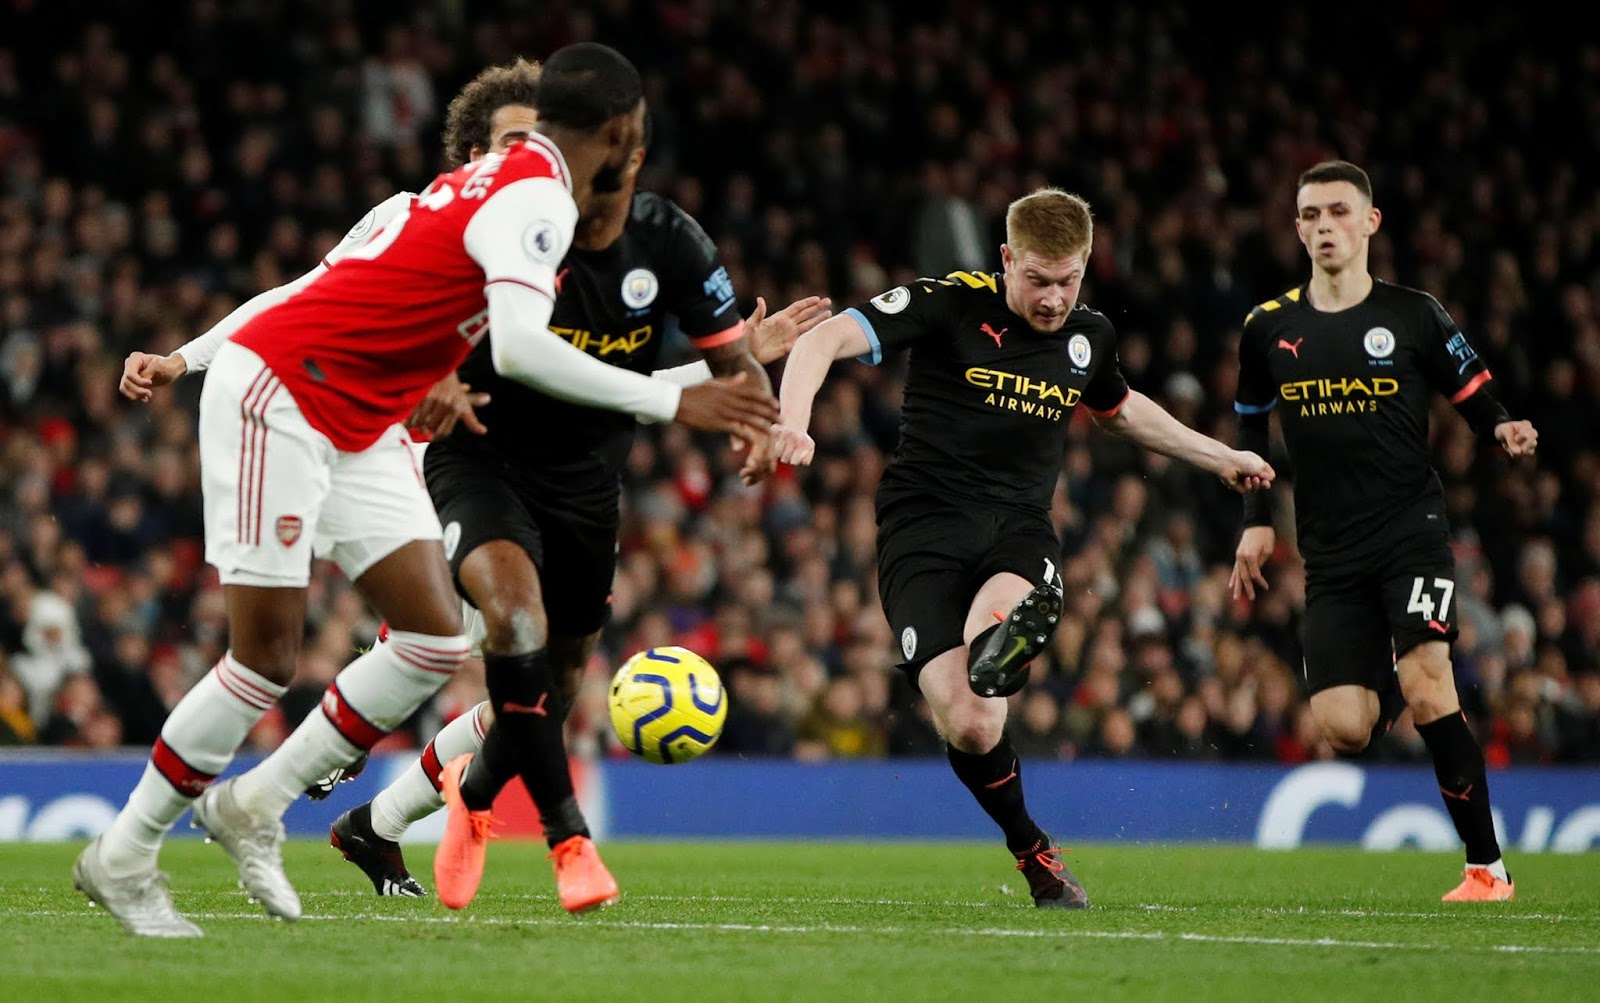 Man City's Kevin De Bruyne attempts a shot at goal against Arsenal